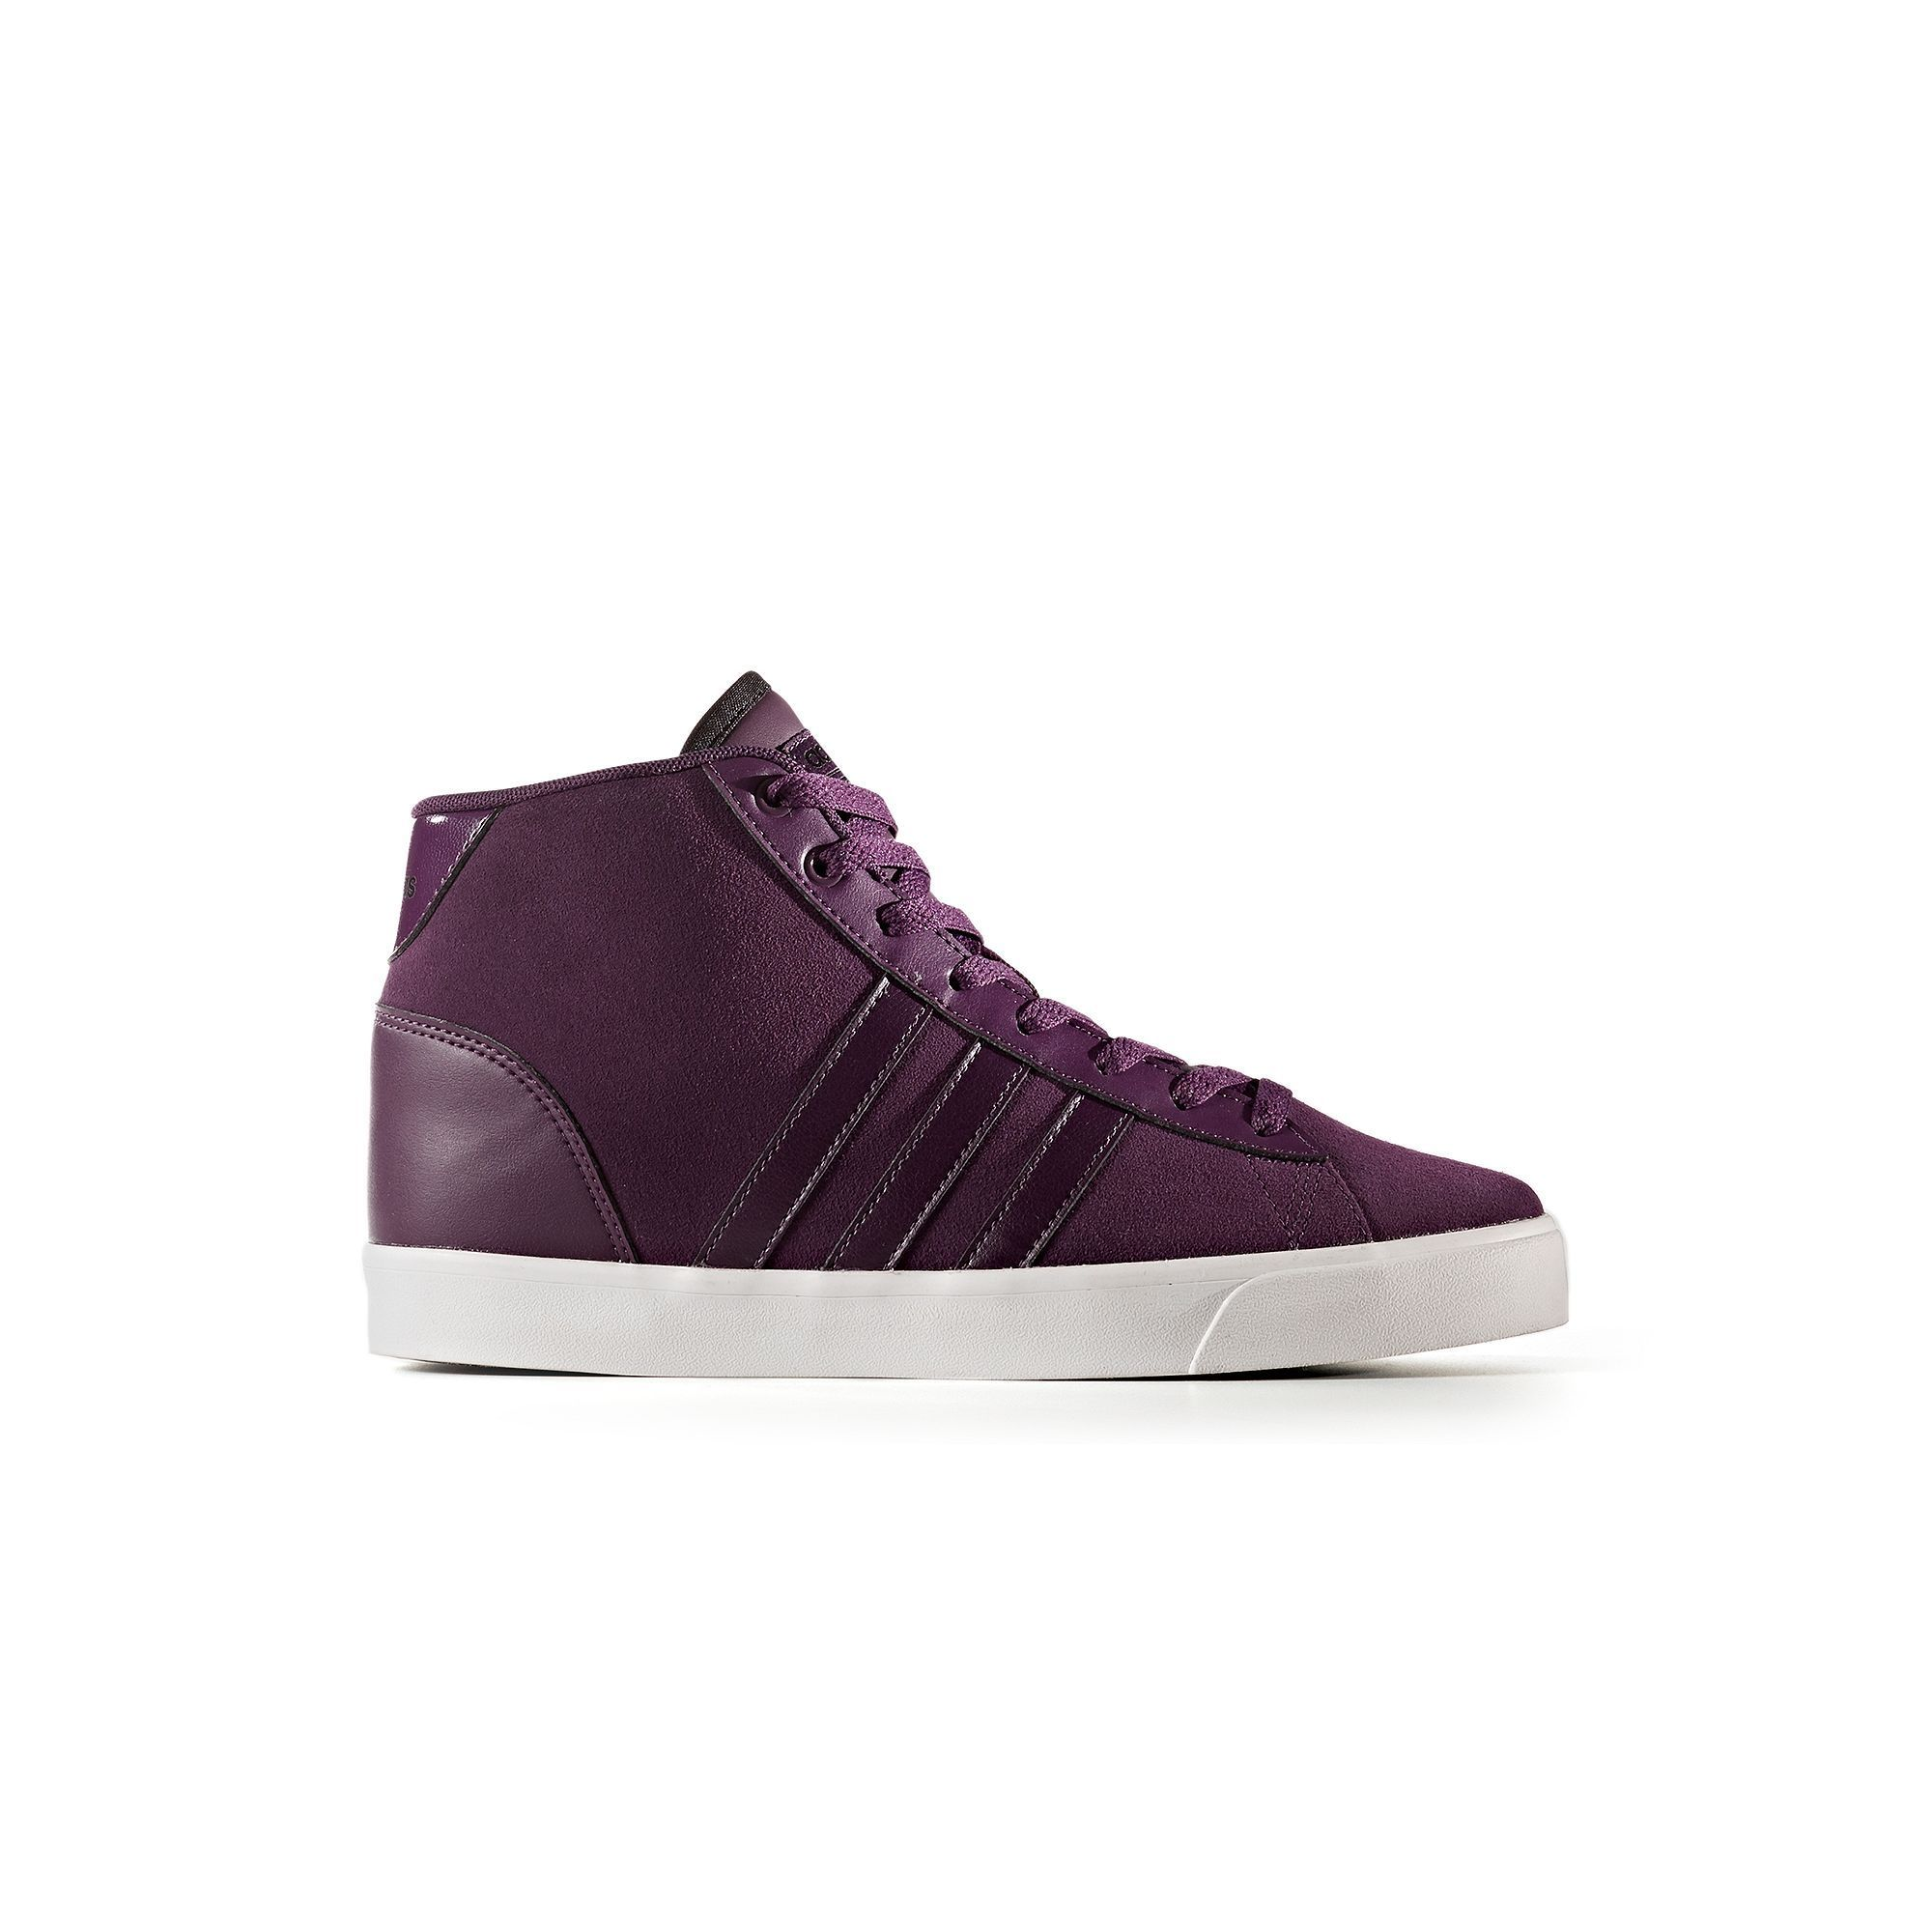 quality design 80f84 363dc Adidas NEO Cloudfoam Daily QT Mid Womens Shoes, Size 6.5, Dark Red